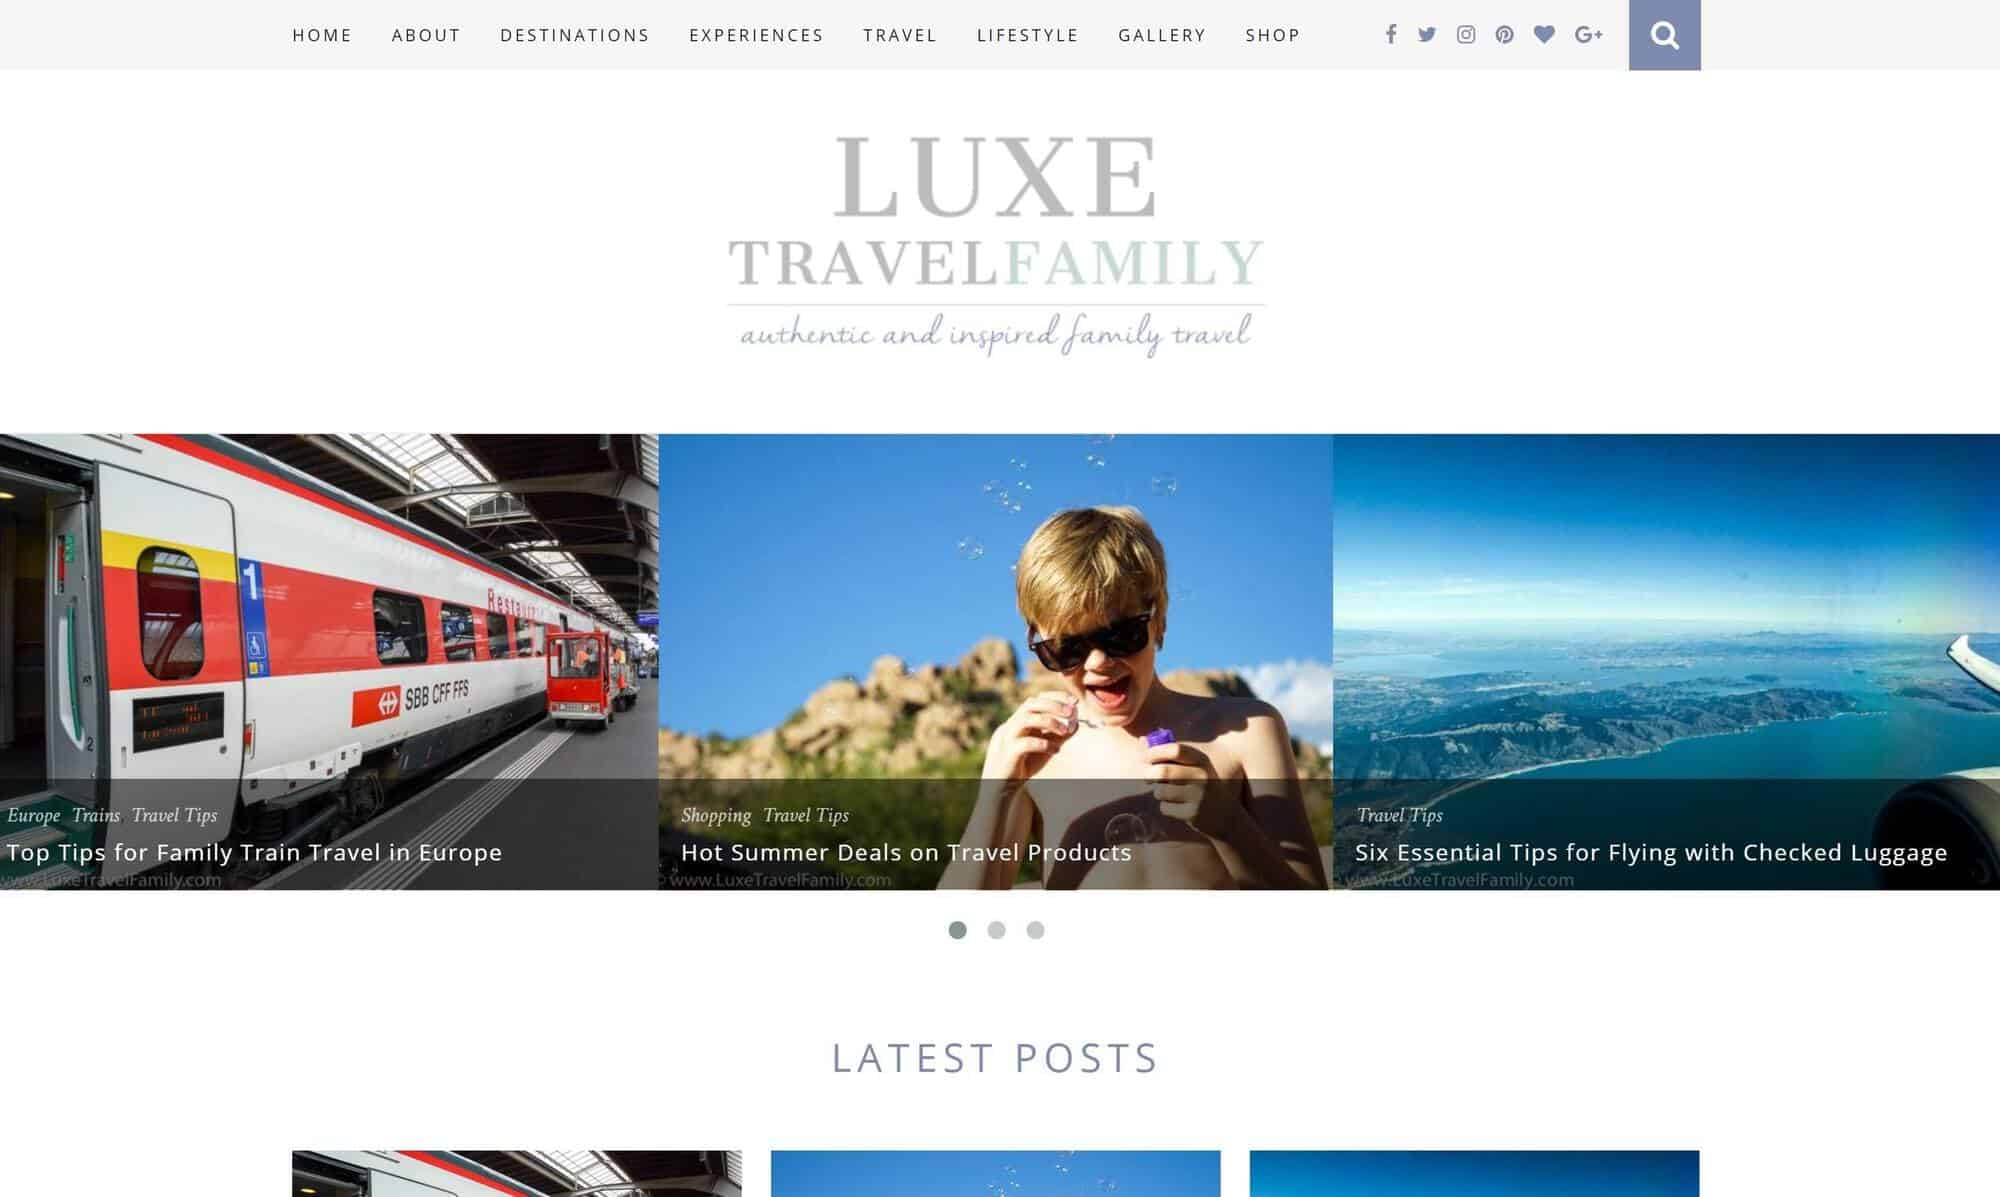 Luxe Travel Family